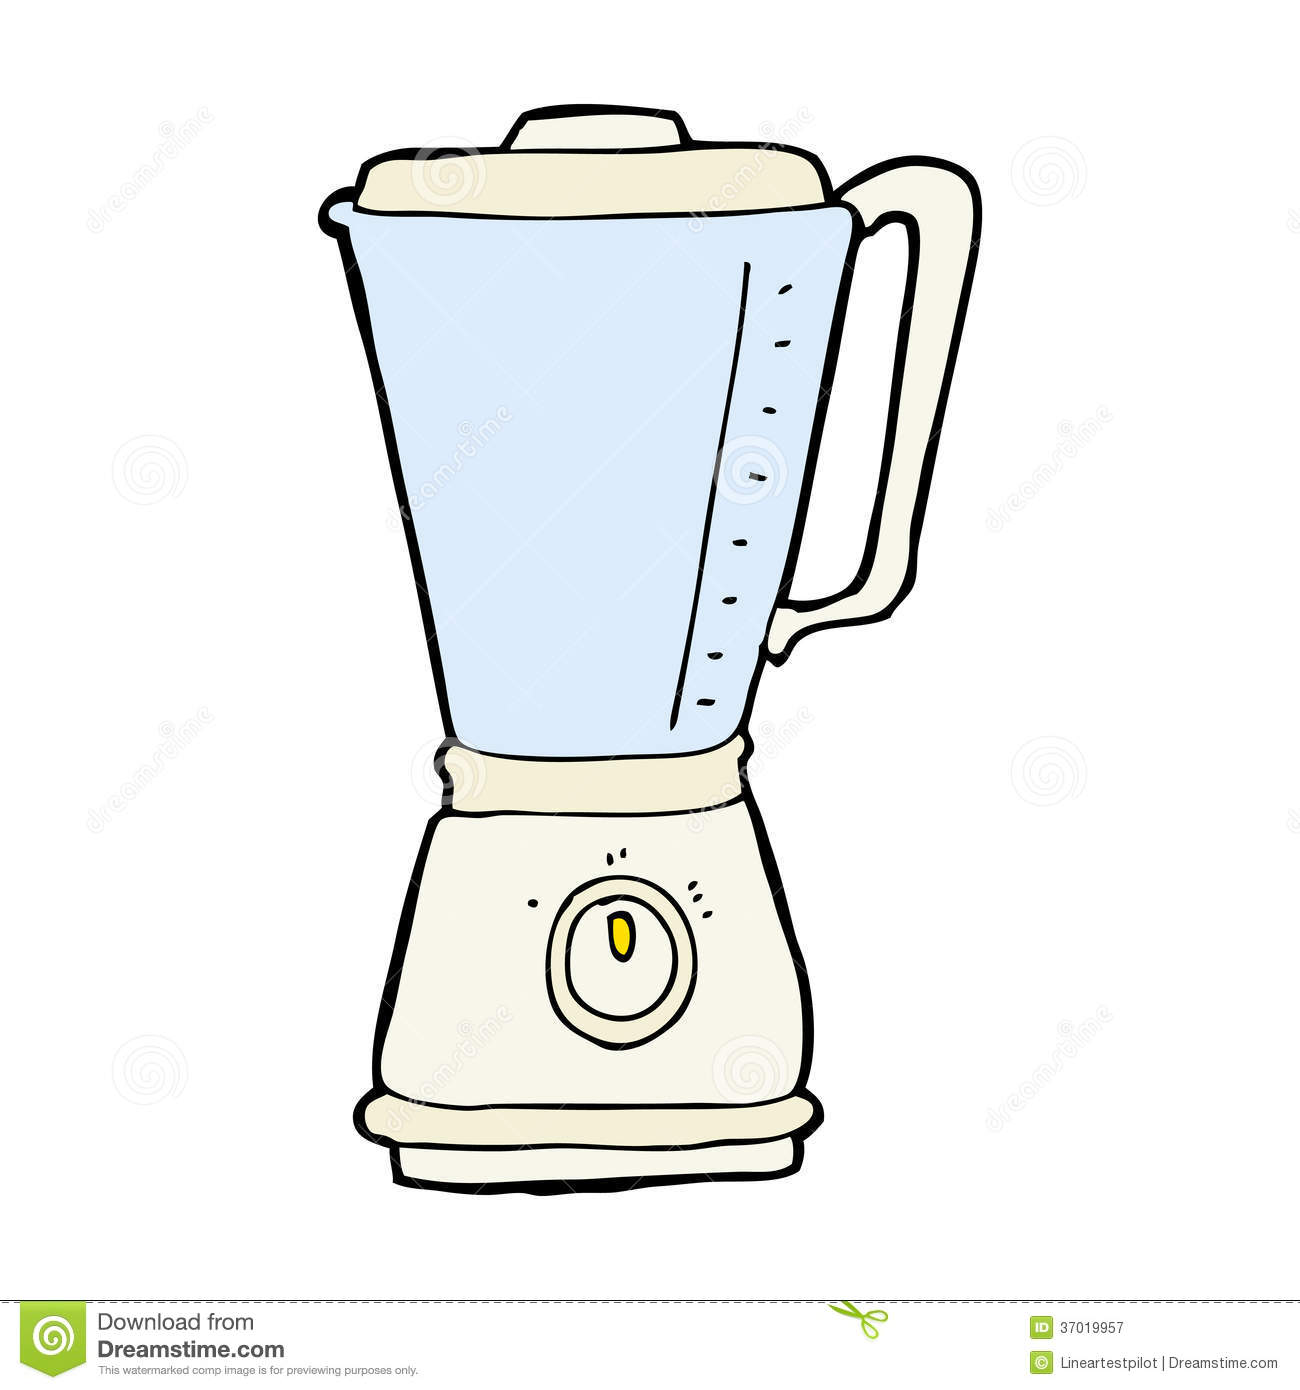 Cartoon Kitchen Blender Royalty Free Stock Photography - Image ...